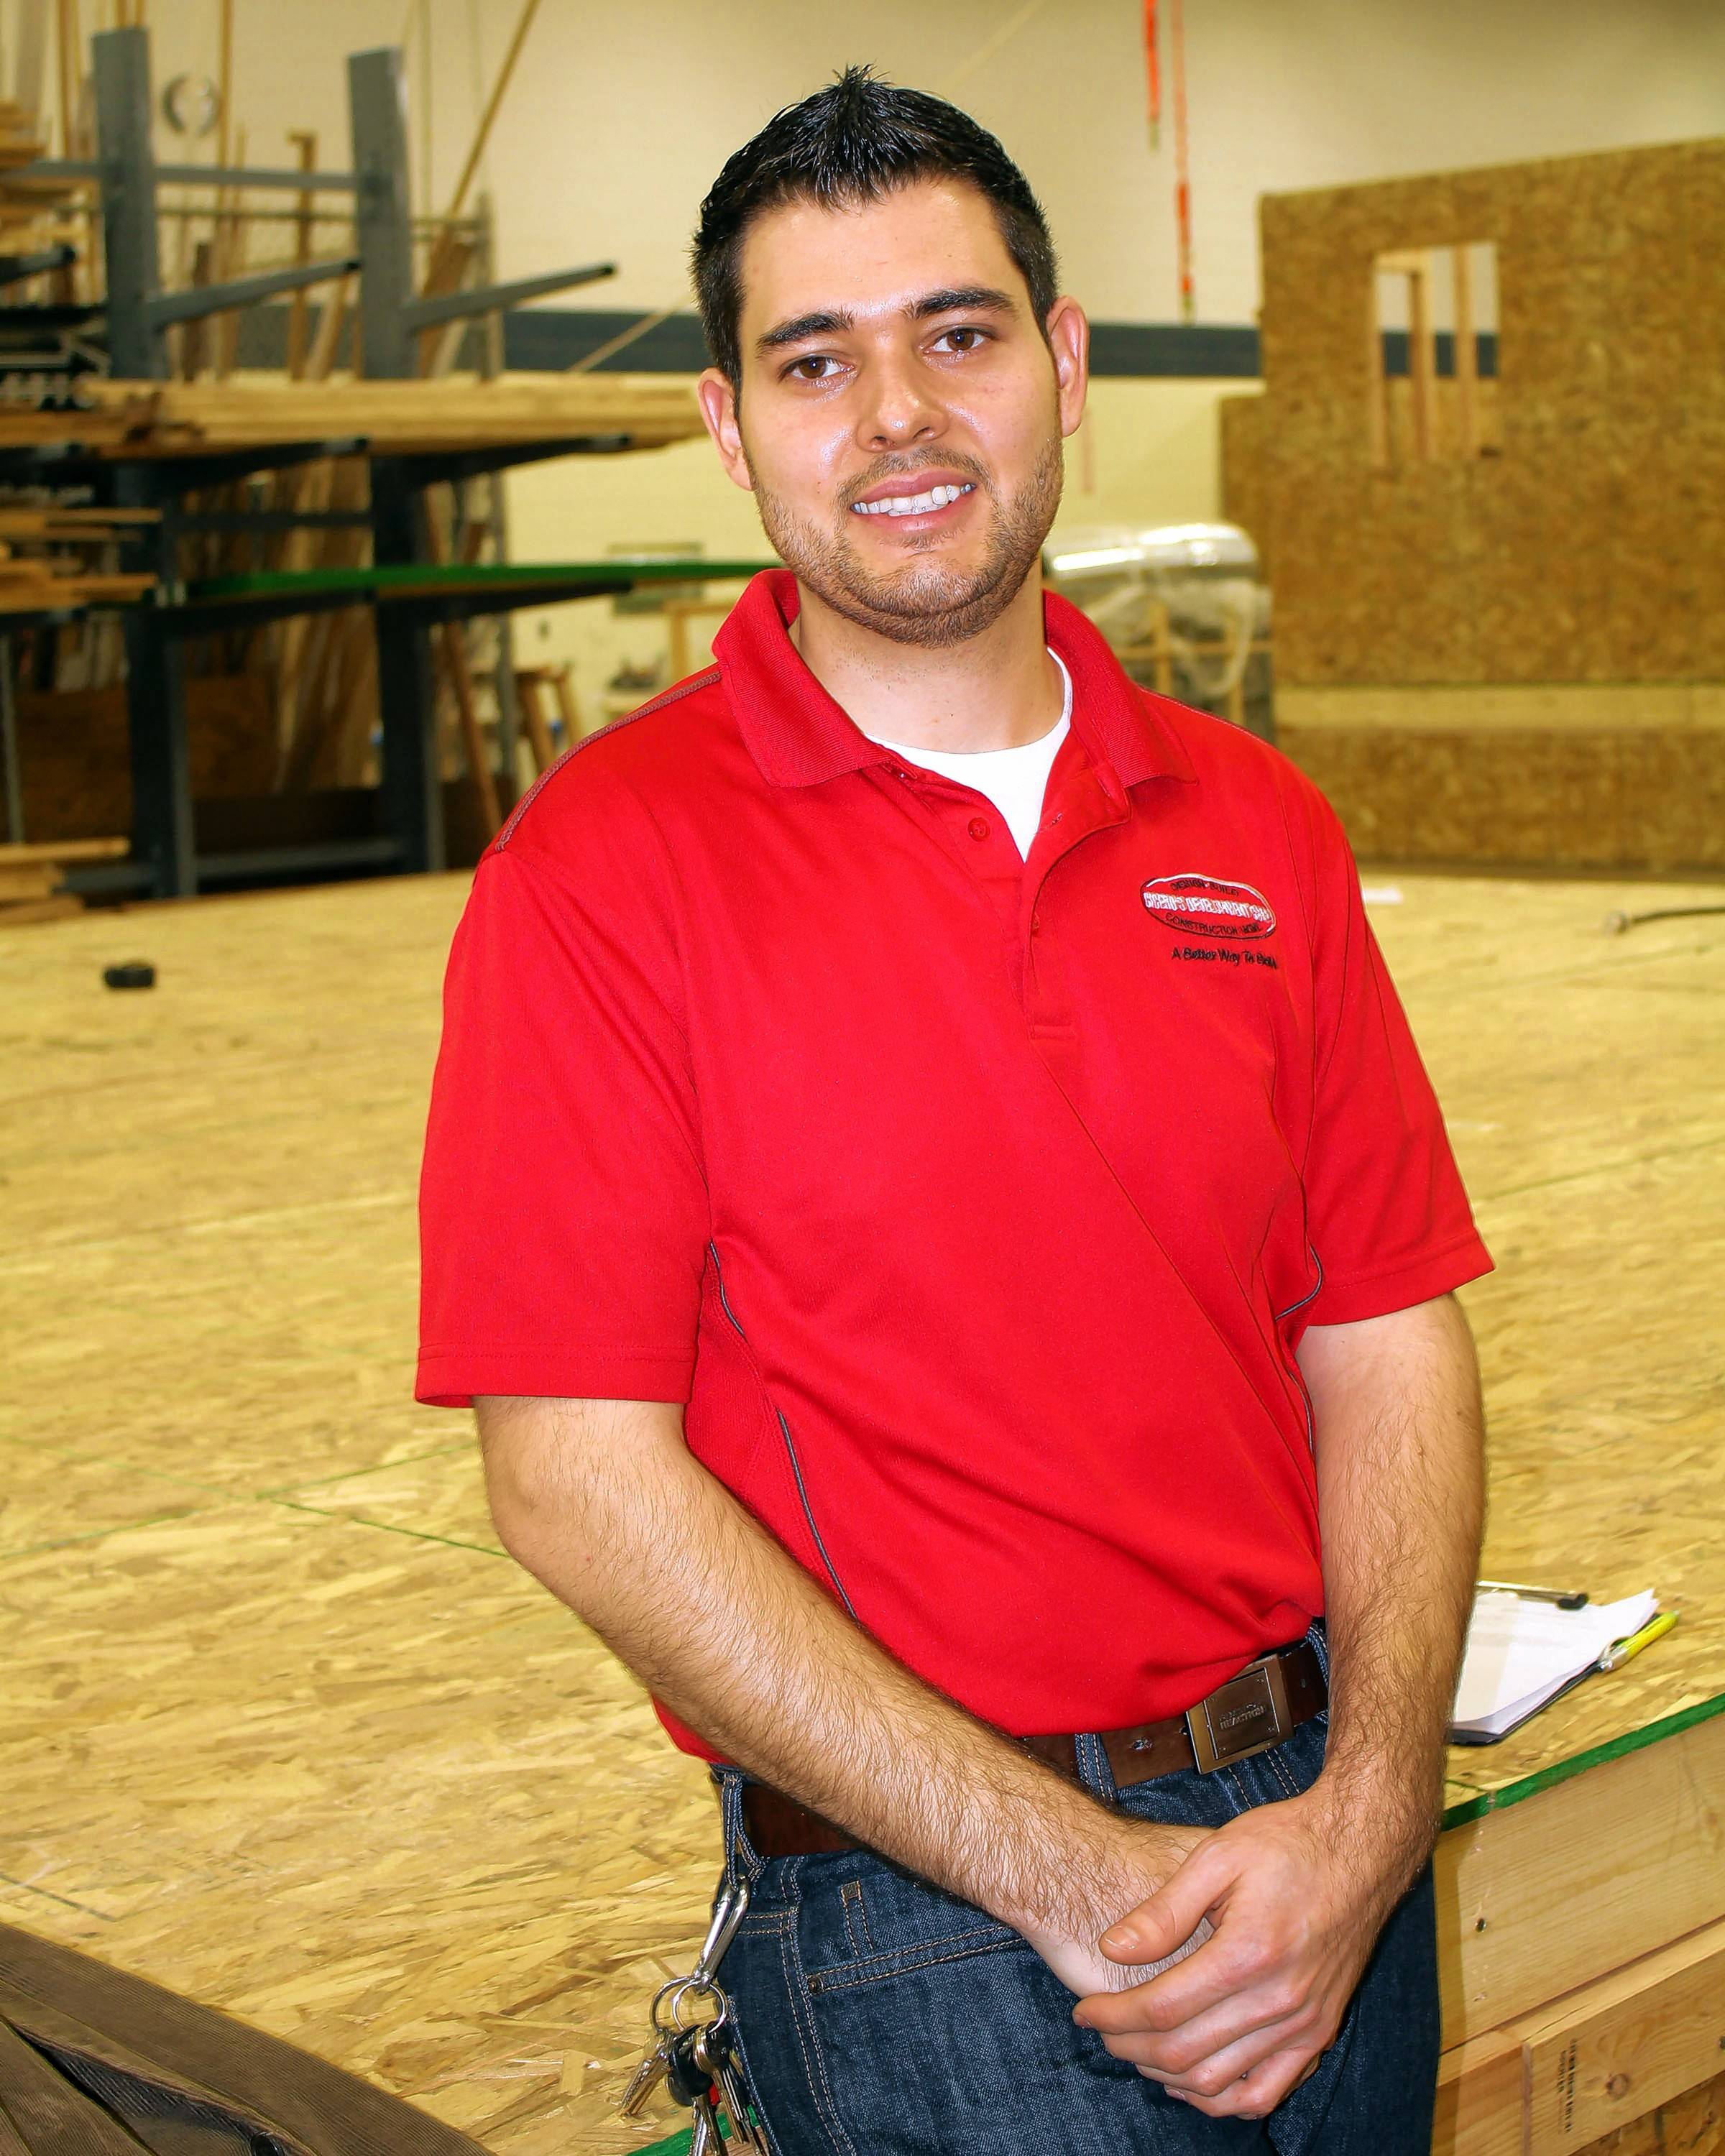 Jose Ortiz began preparing for his career in 2005 as a high school junior from West Chicago Community High School in the construction trades program at Technology Center of DuPage. He is now a project manager for Cicero's Development Corporation in Plainfield.